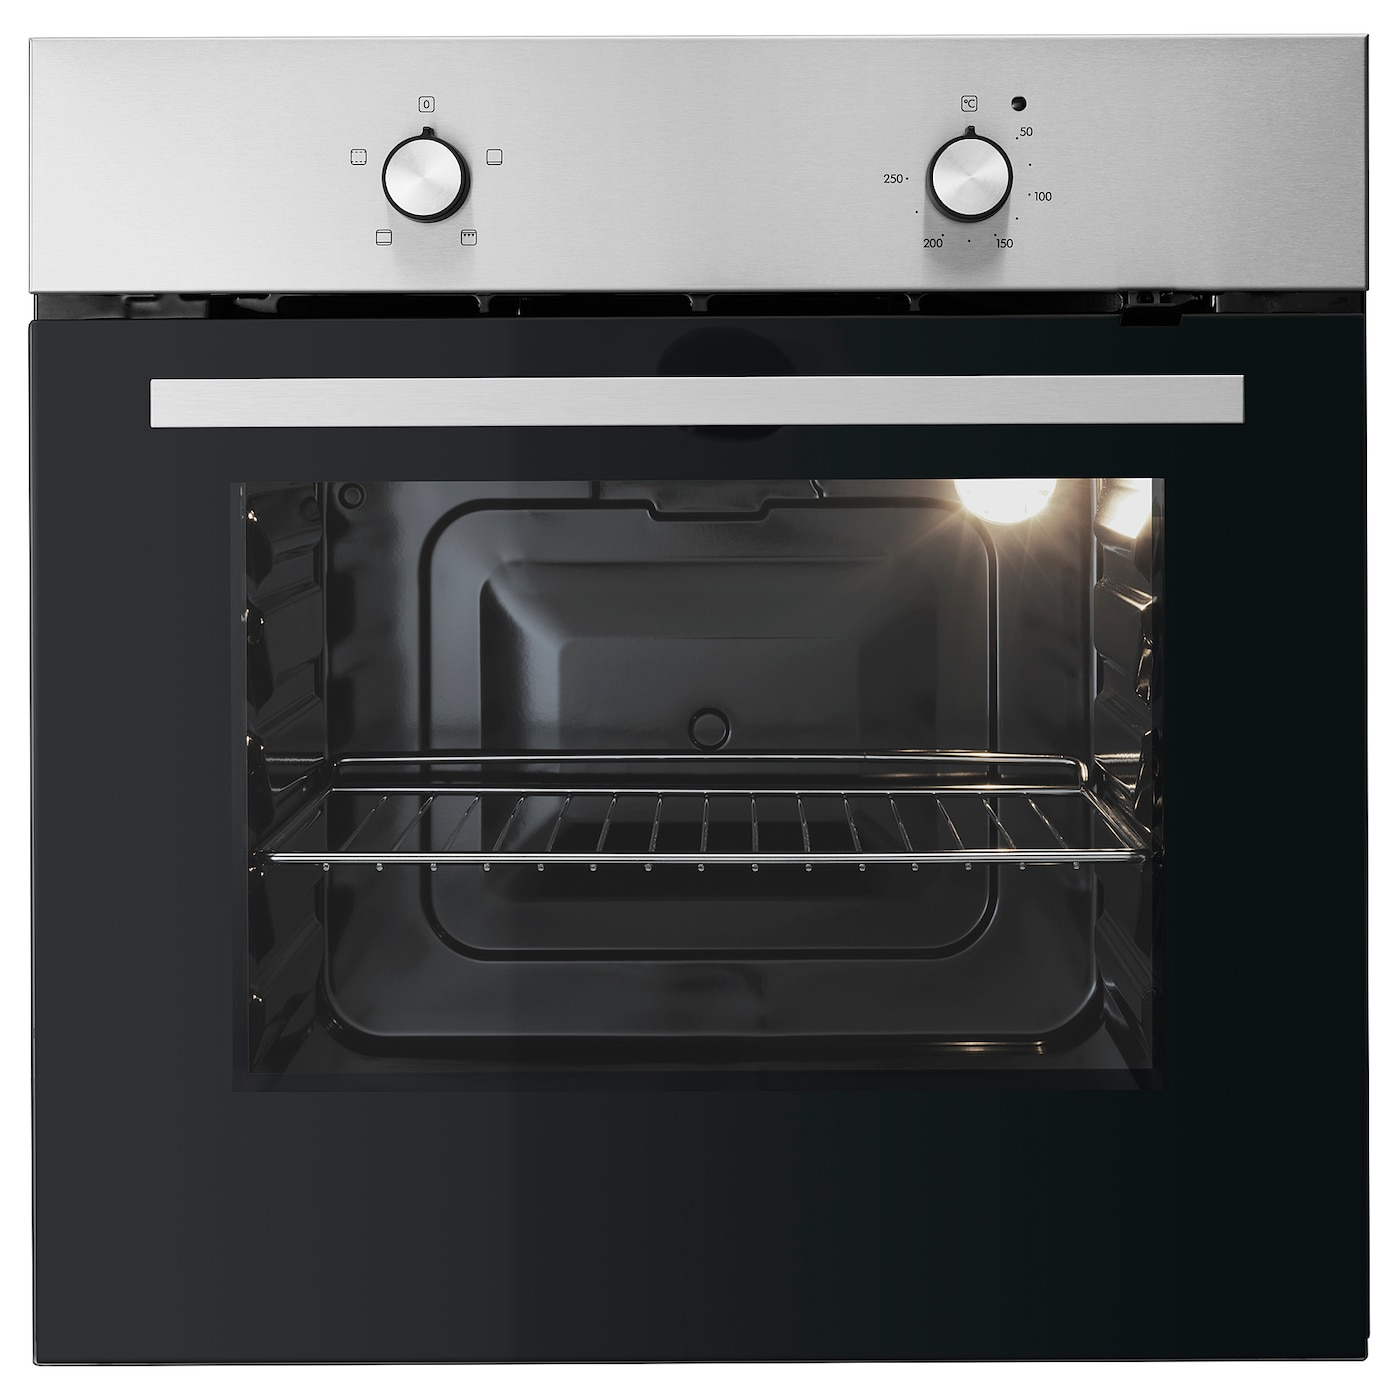 IKEA GÖRLIG oven 5 year guarantee. Read about the terms in the guarantee brochure.